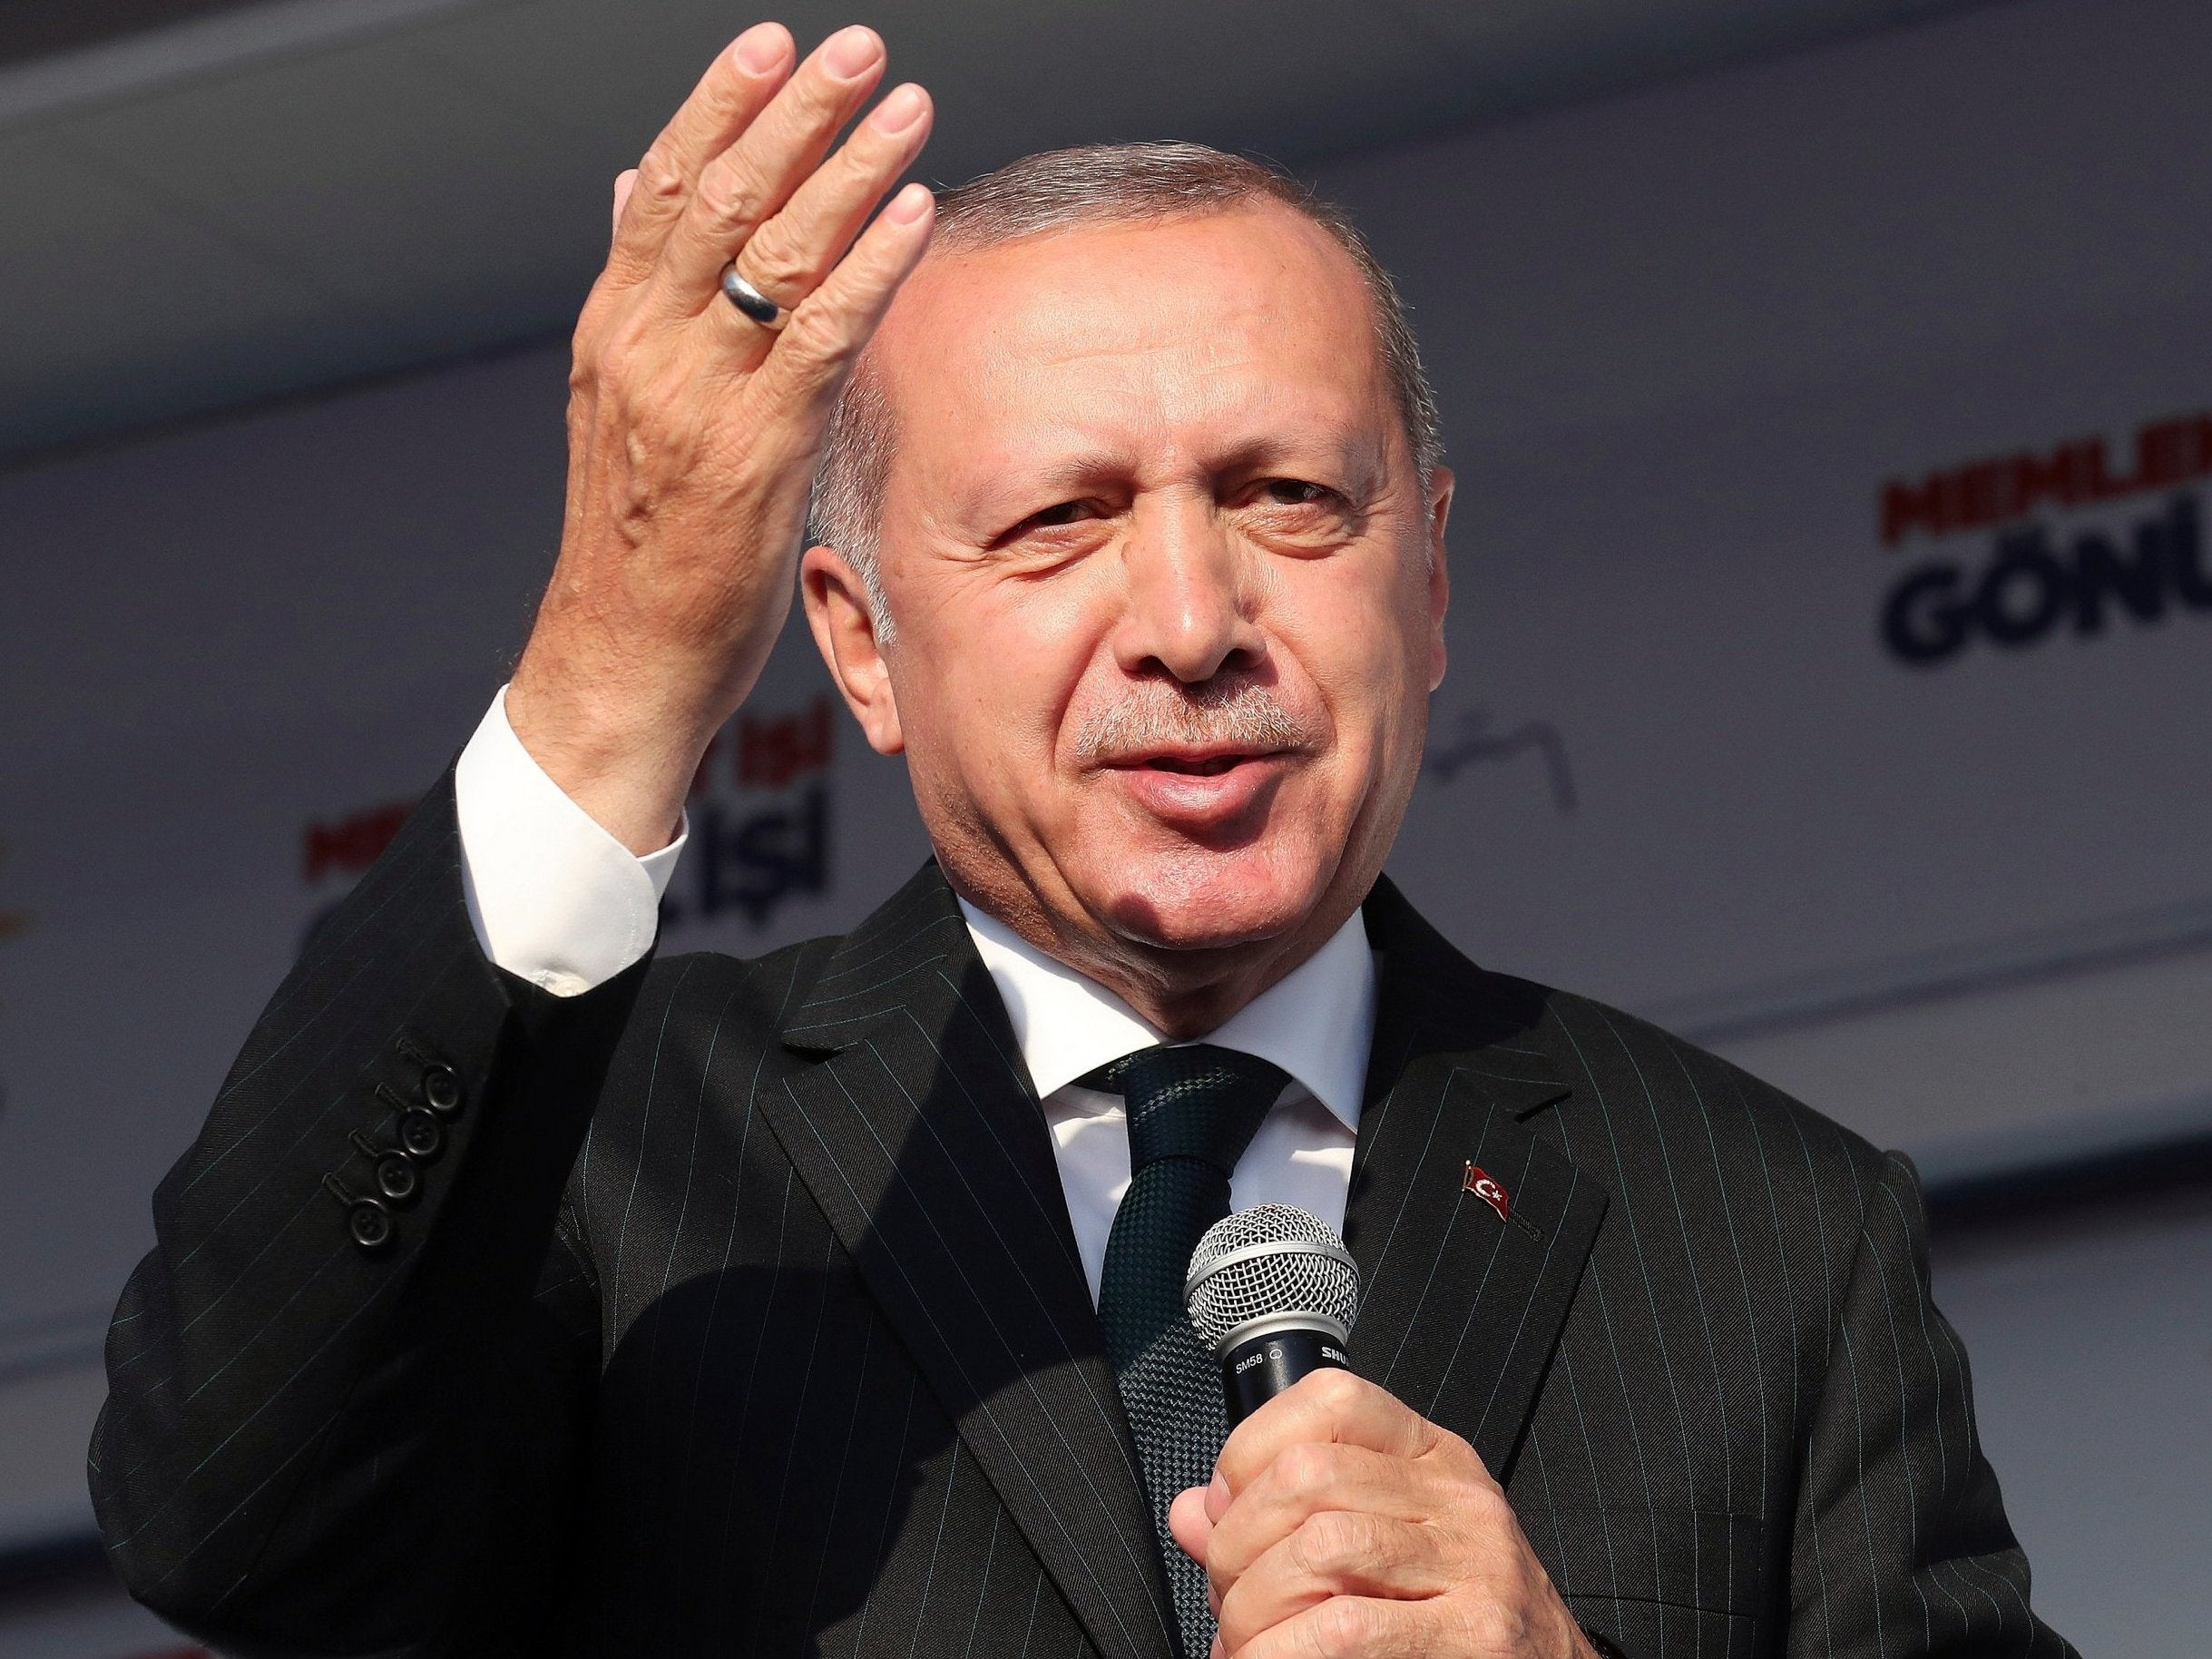 New Zealand leader Jacinda Ardern sends minister to Turkey to 'confront' Erdogan about mosque shooting comments